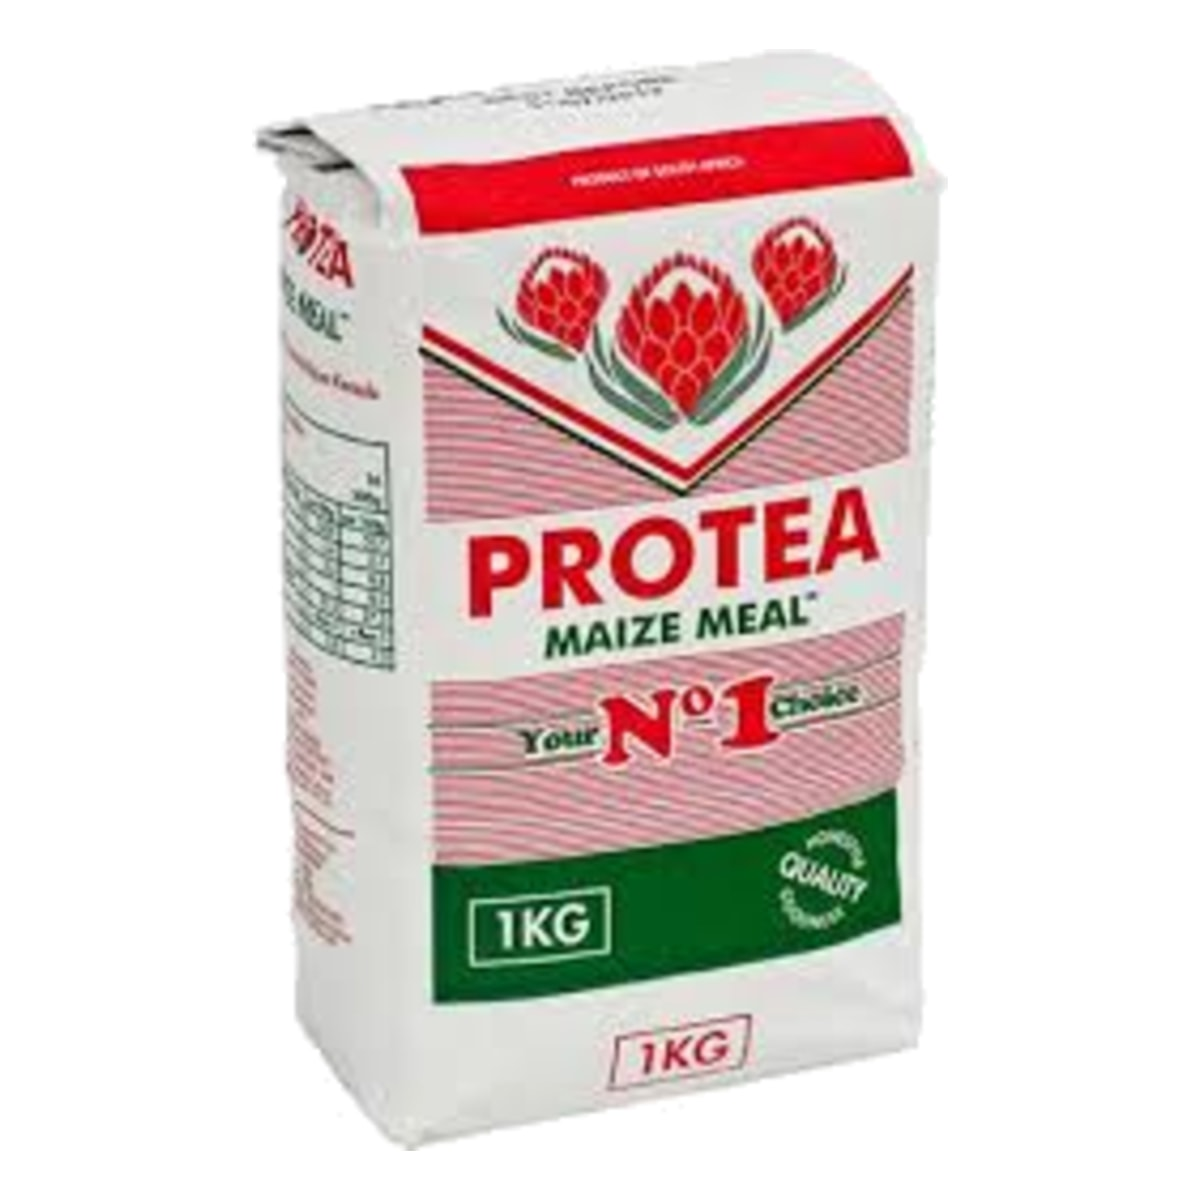 Buy Protea Foods Maize Meal - 1 kg